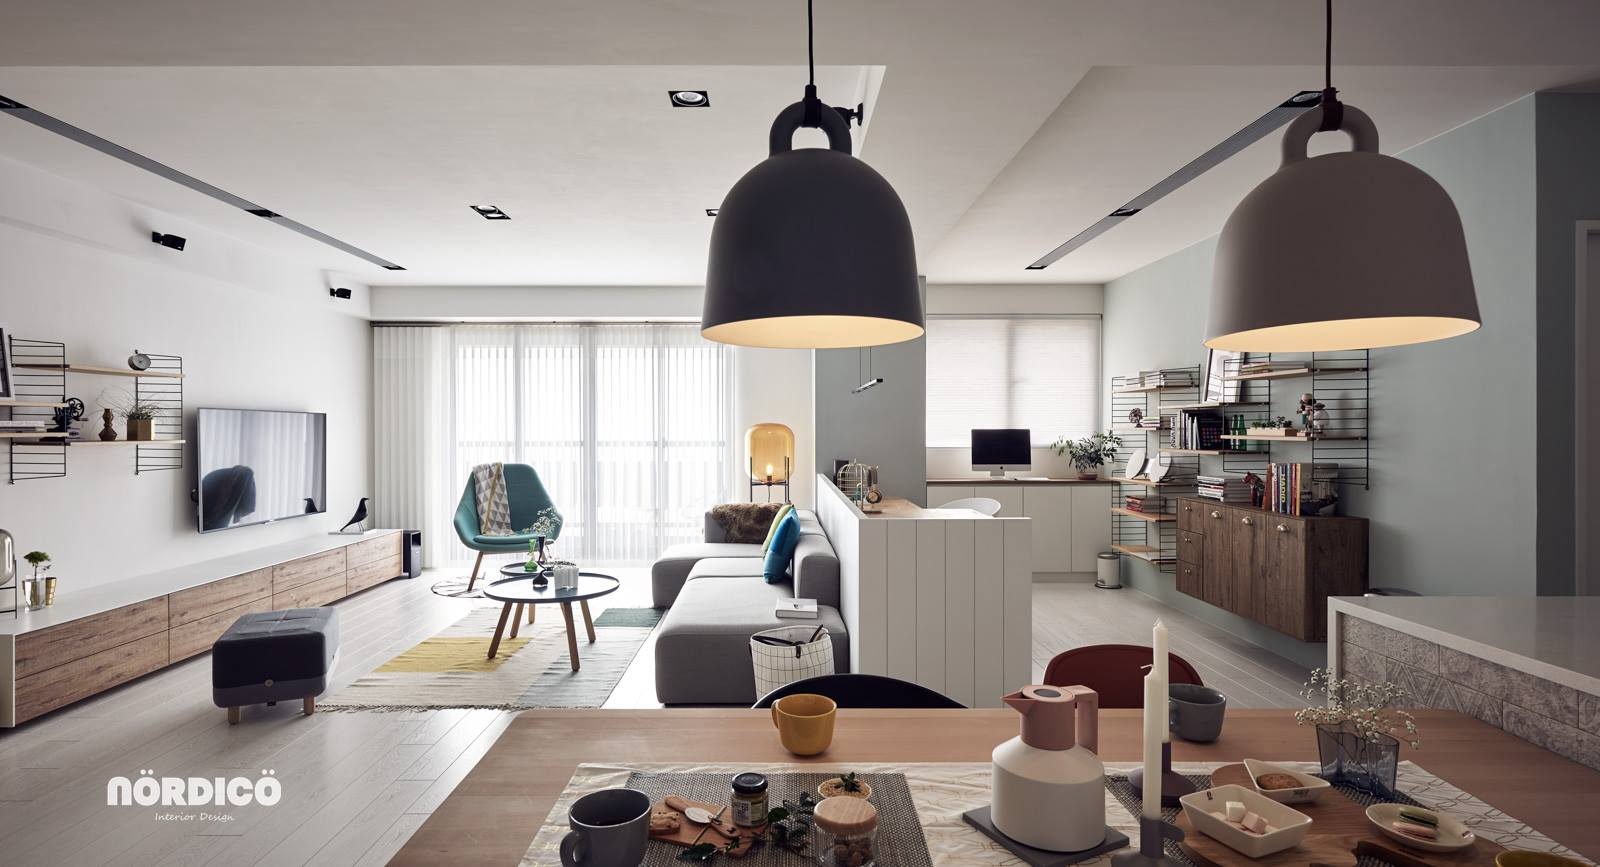 Nordic living room designs ideas by nordico roohome for Interior designs by ria